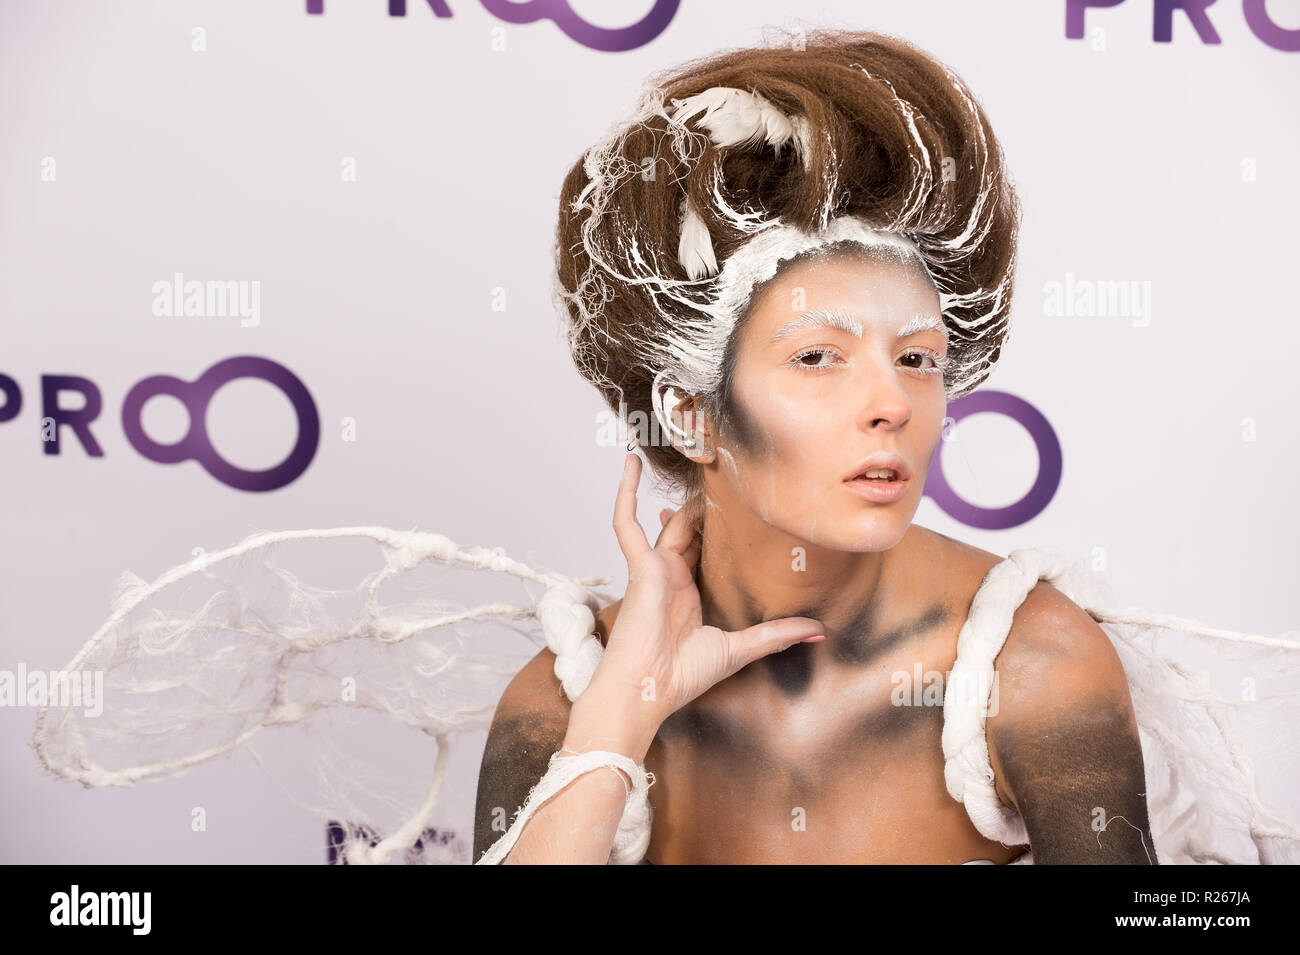 Kyiv, Ukraine - September 16, 2015: girl model with hair performs professional makeup and body art on masterclass at International exhibition of perfumery and cosmetics Intercharm as animal in white - Stock Image